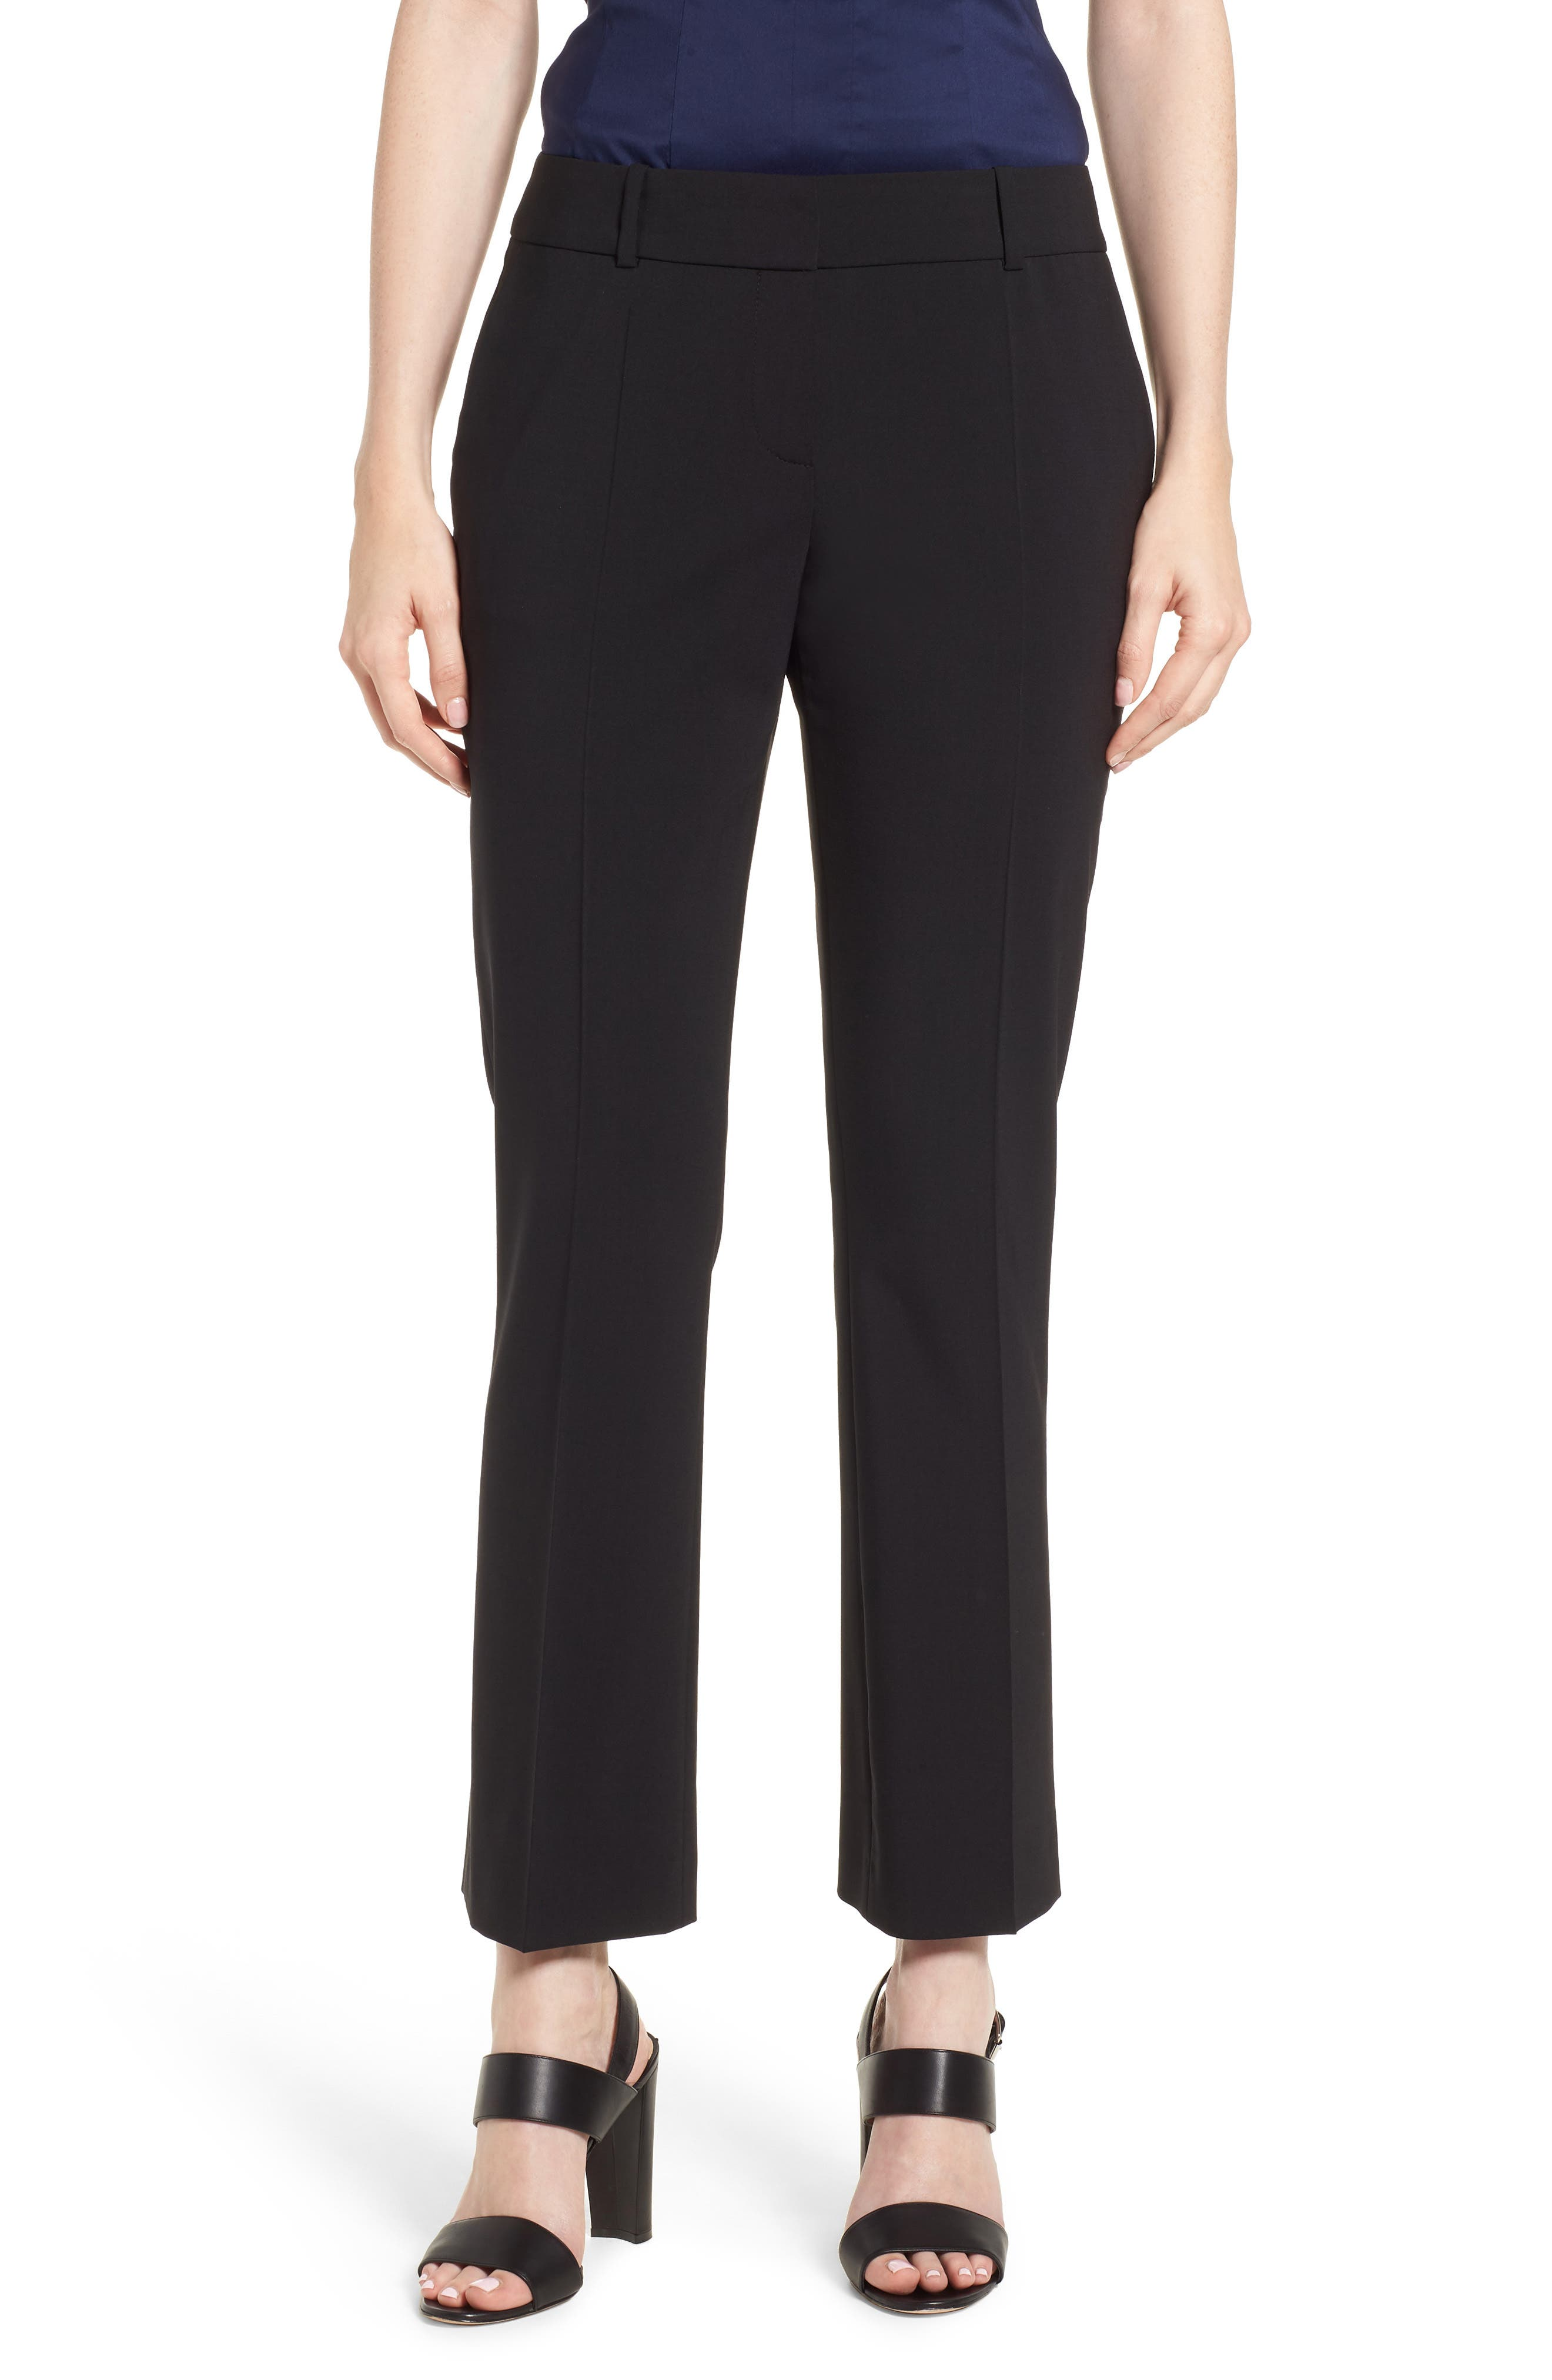 Talenara Tropical Stretch Wool Ankle Trousers,                             Main thumbnail 1, color,                             Black